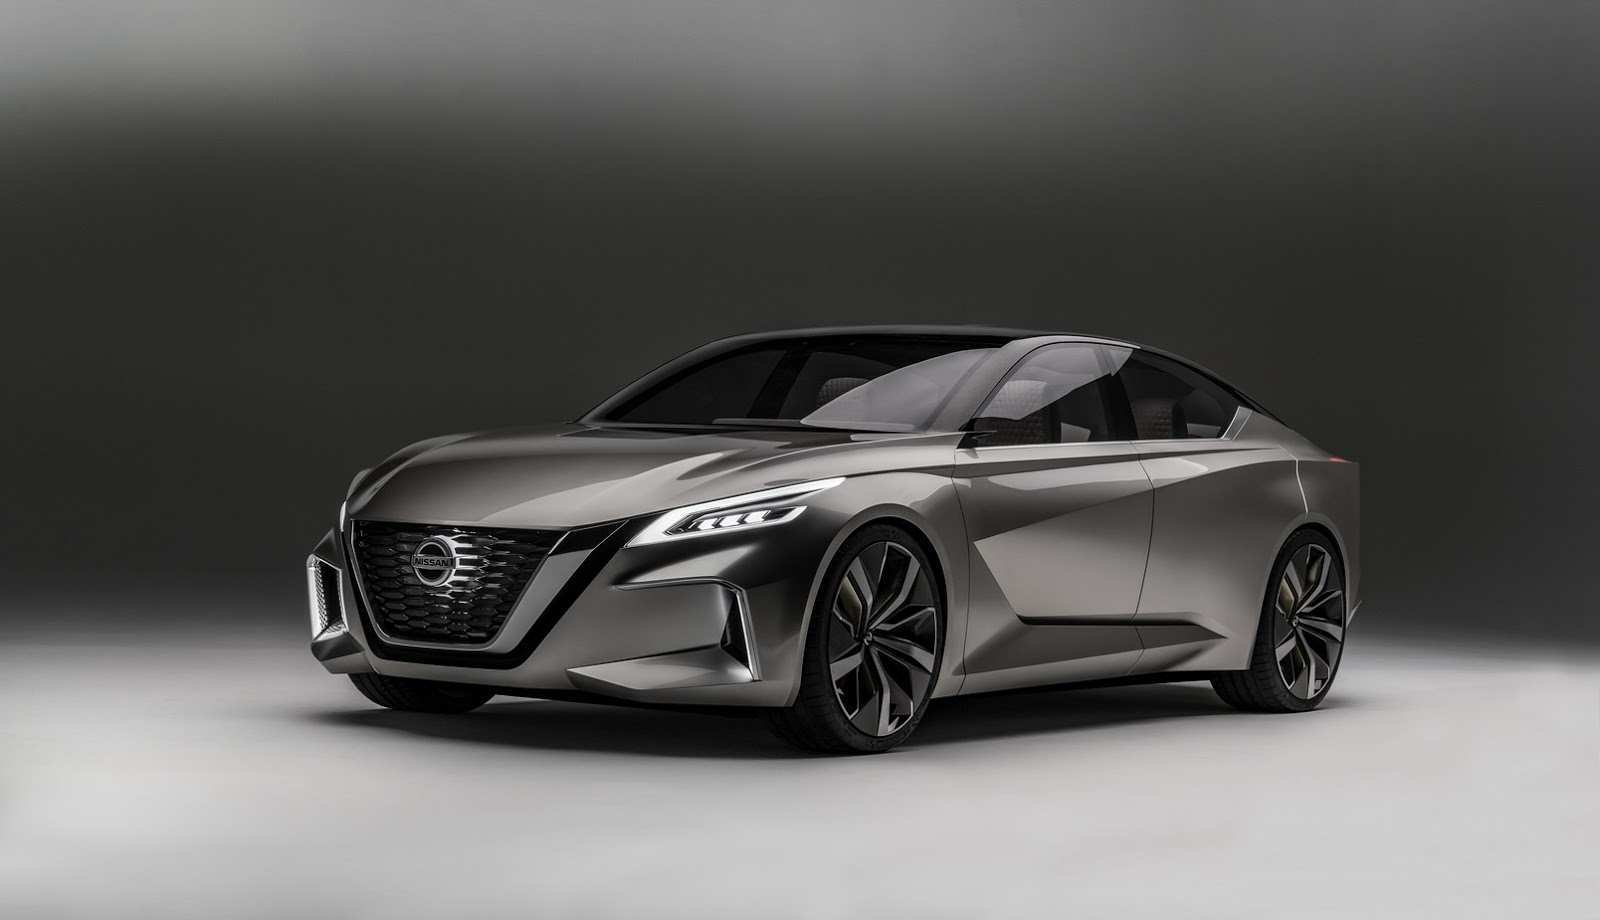 20 Concept of 2020 Nissan Altima New Concept Release Date with 2020 Nissan Altima New Concept